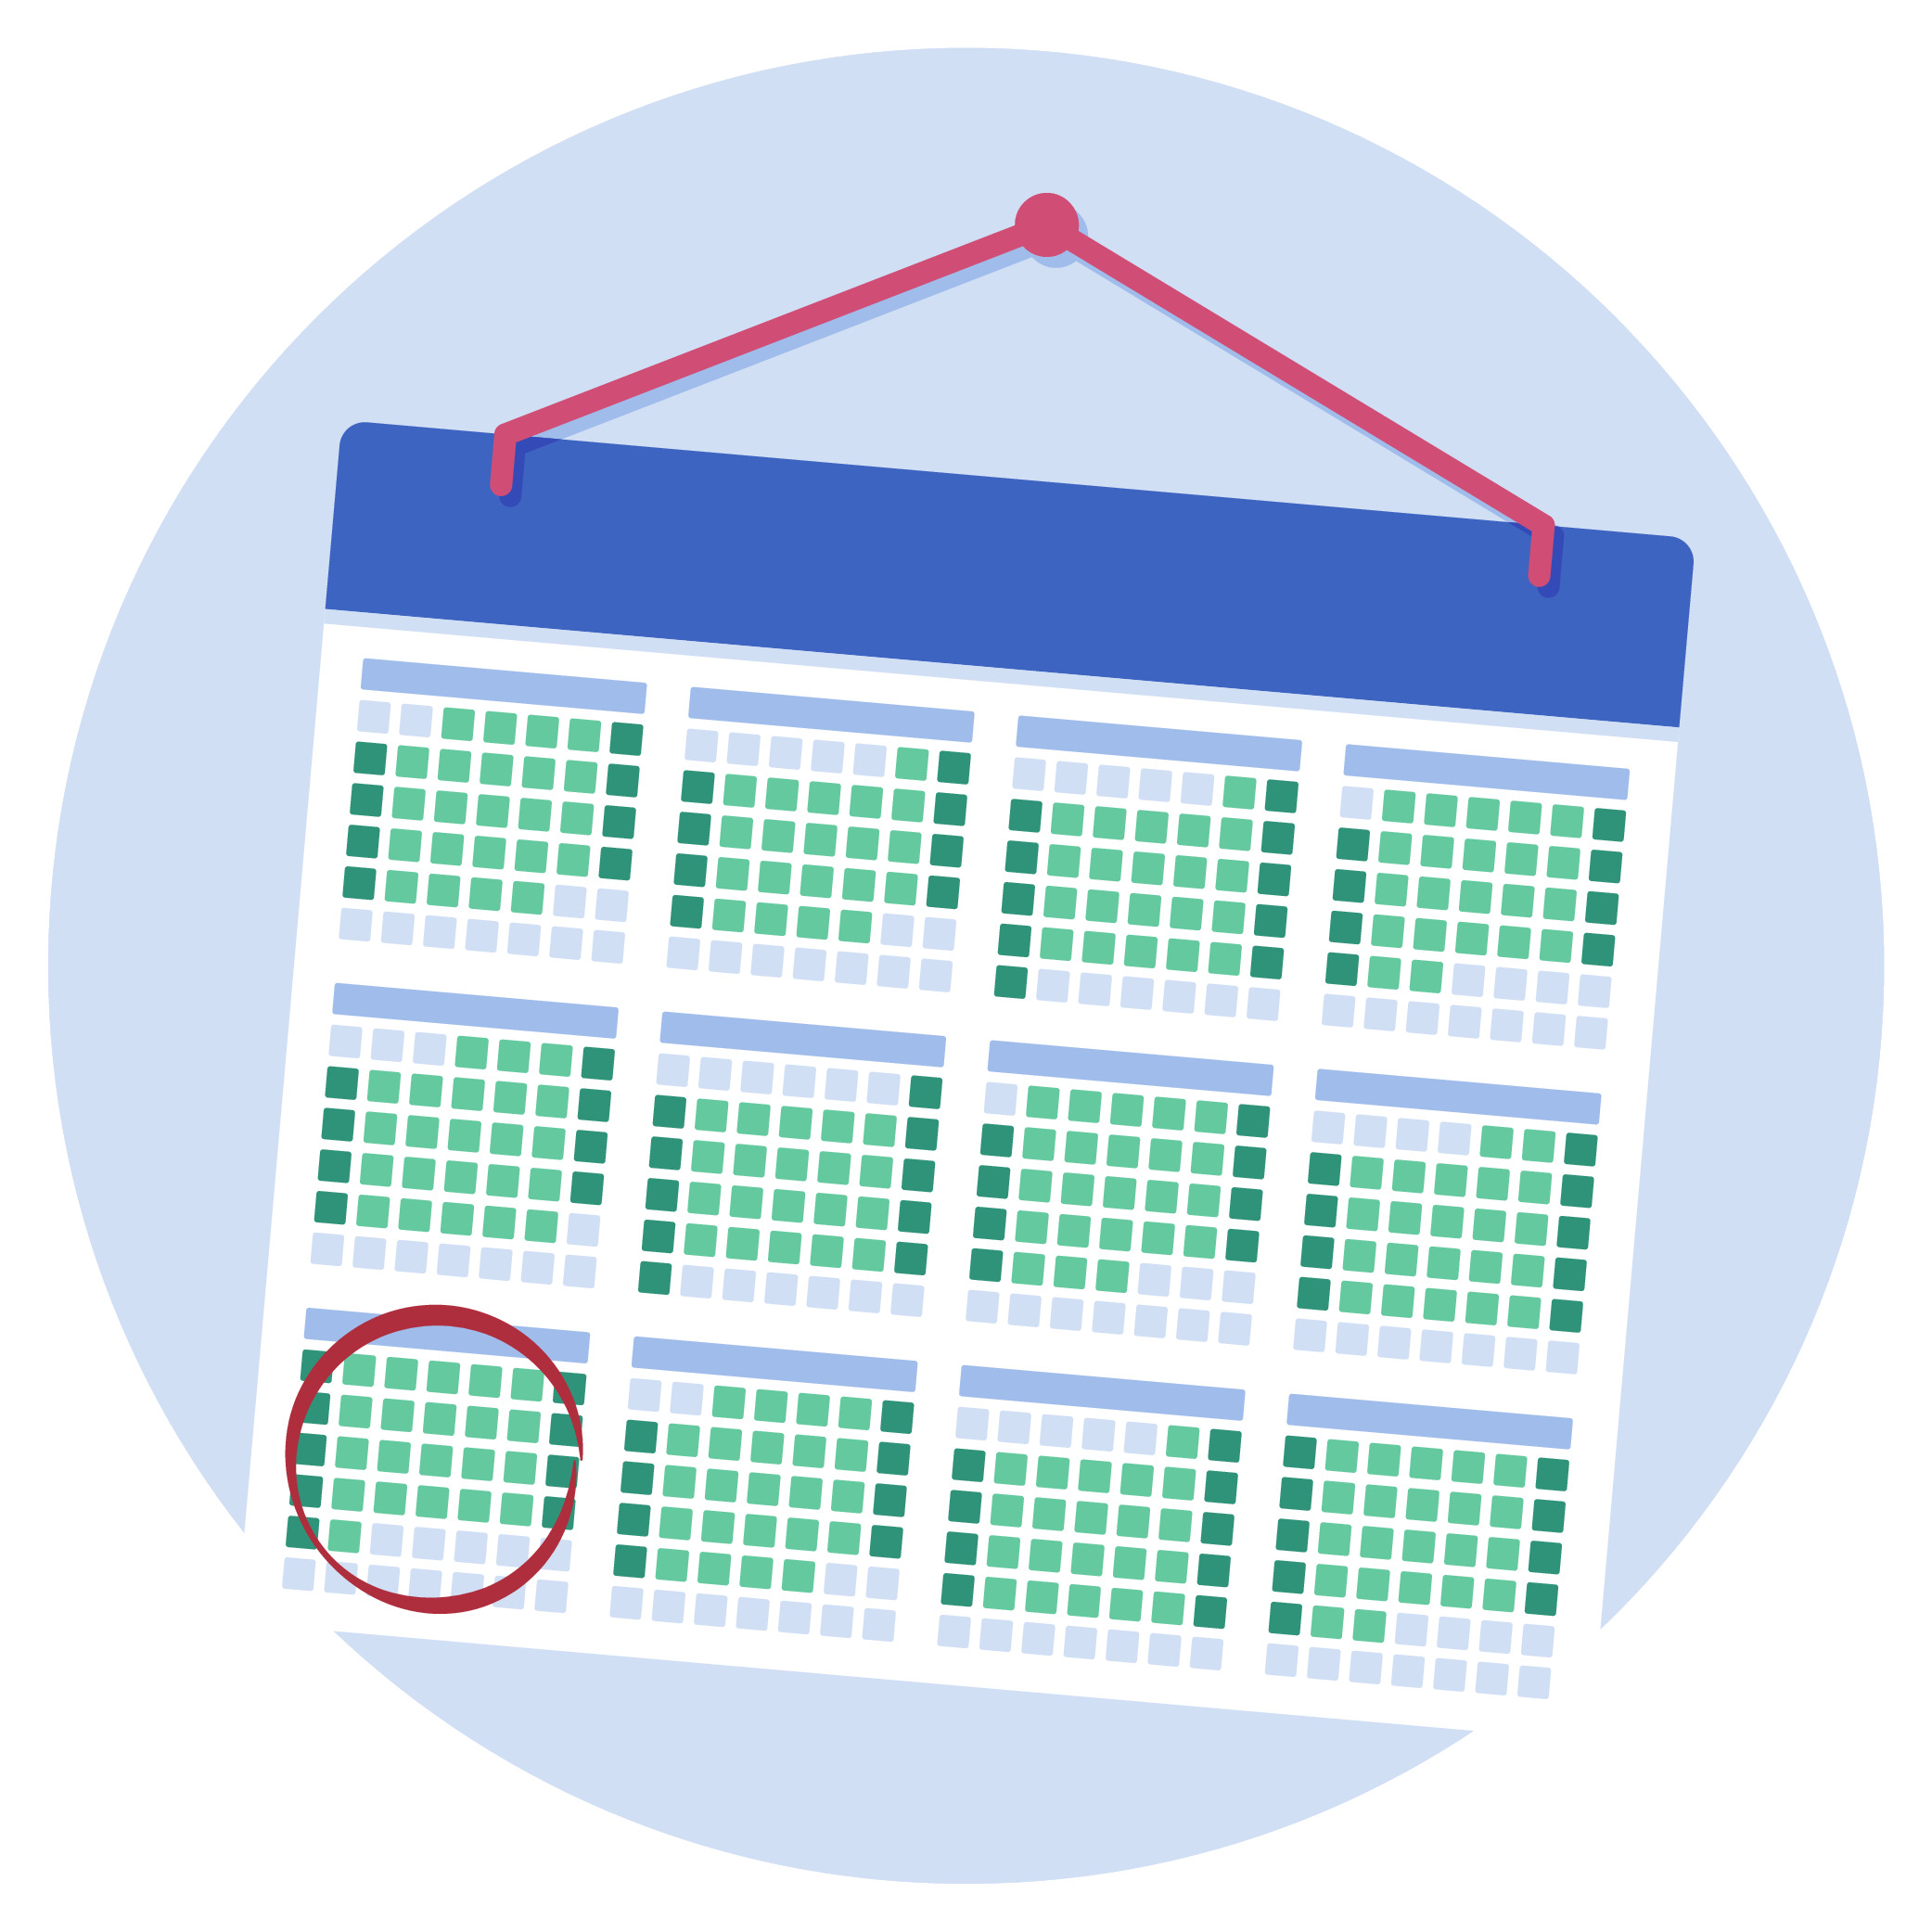 A calendar with a person's UCAT test date marked with a circle.